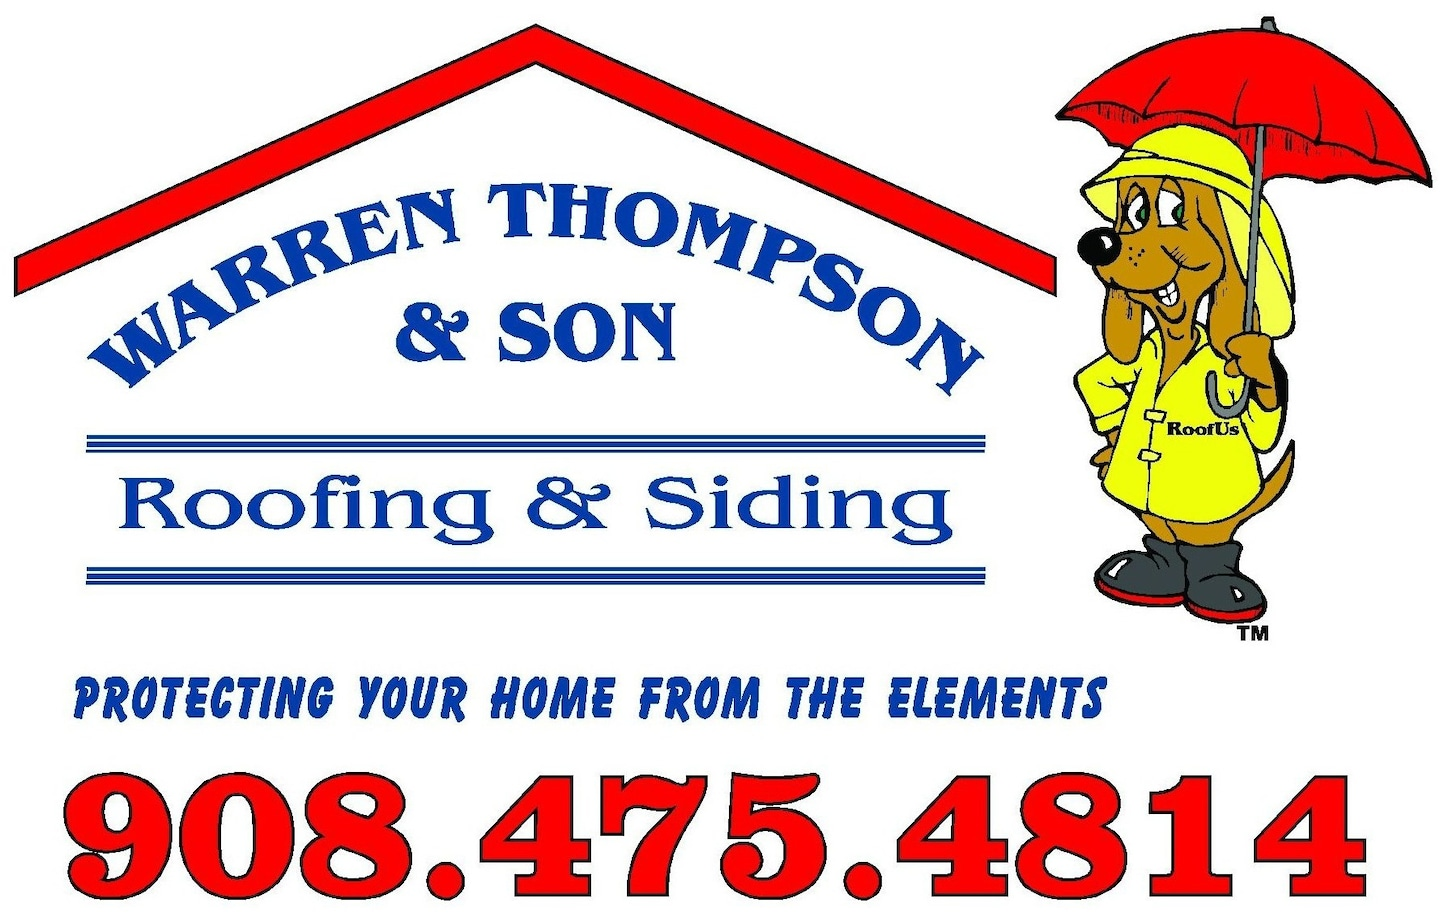 Warren Thompson & Son